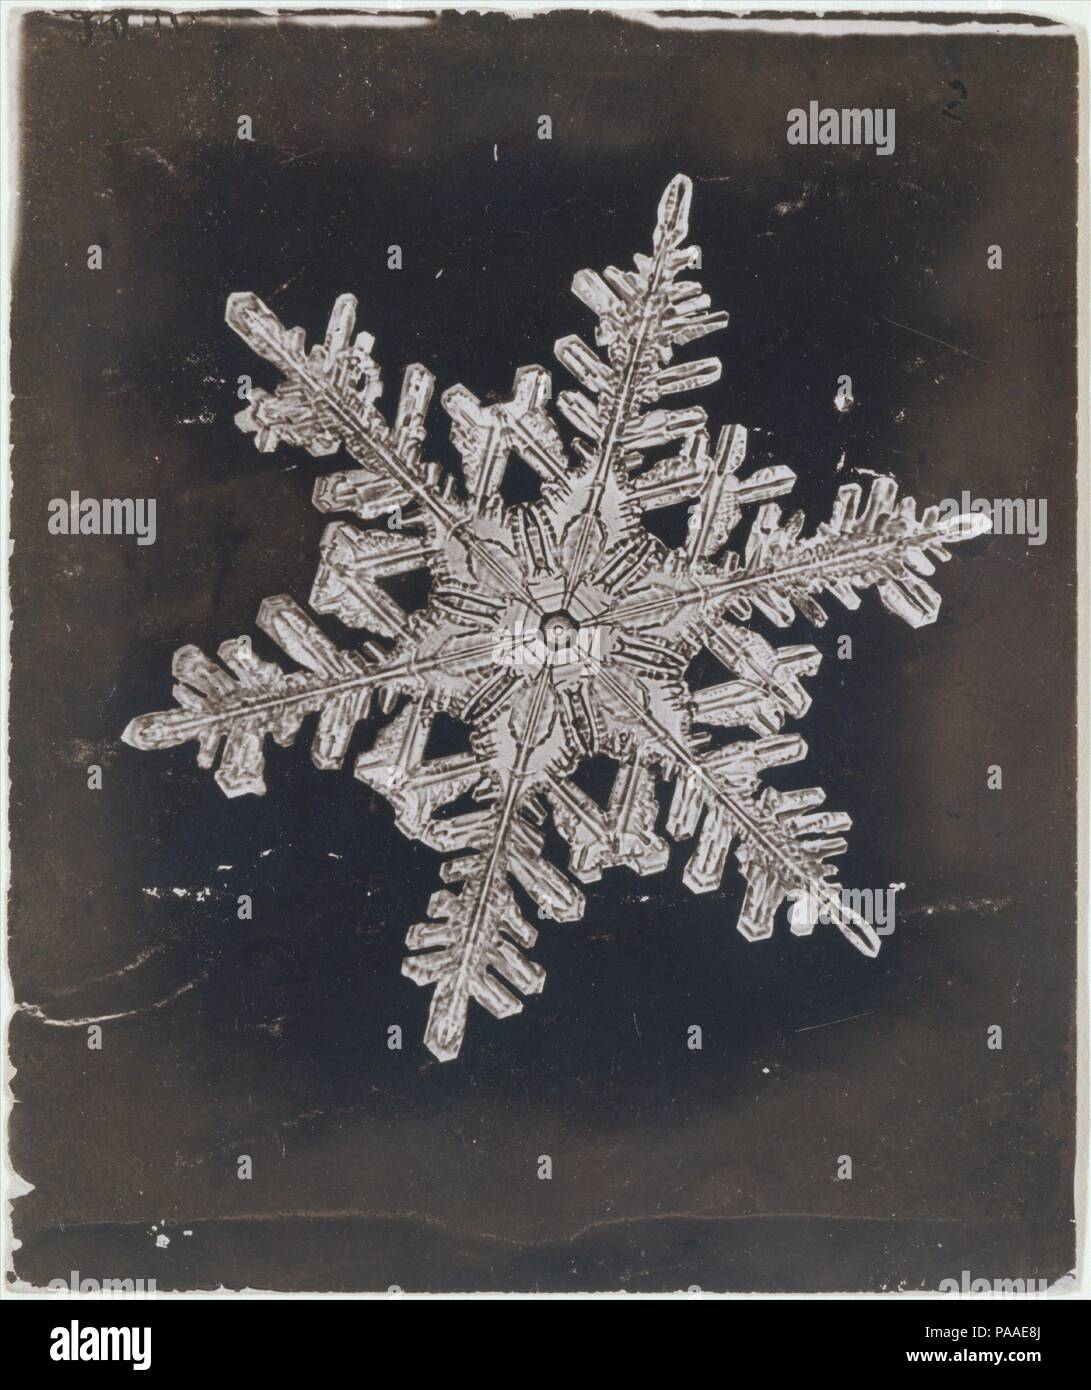 [Snow Crystal]. Artist: Wilson Alwyn Bentley (American, 1865-1931). Dimensions: Image: 7.4 x 9 cm (2 15/16 x 3 9/16 in.). Date: ca. 1910.  A self-educated farmer from Jericho, Vermont, Bentley was a pioneer in the field of photomicrography. Using a microscope fitted to a bellows camera, he was the first to photograph a single snowflake. For over half a century, he pursued his obsession with the unique forms of snow crystals, cataloguing the endless variations on a basic hexagonal structure. In addition to their formal beauty, Bentley's photographs are fine examples of a typological approach in - Stock Image